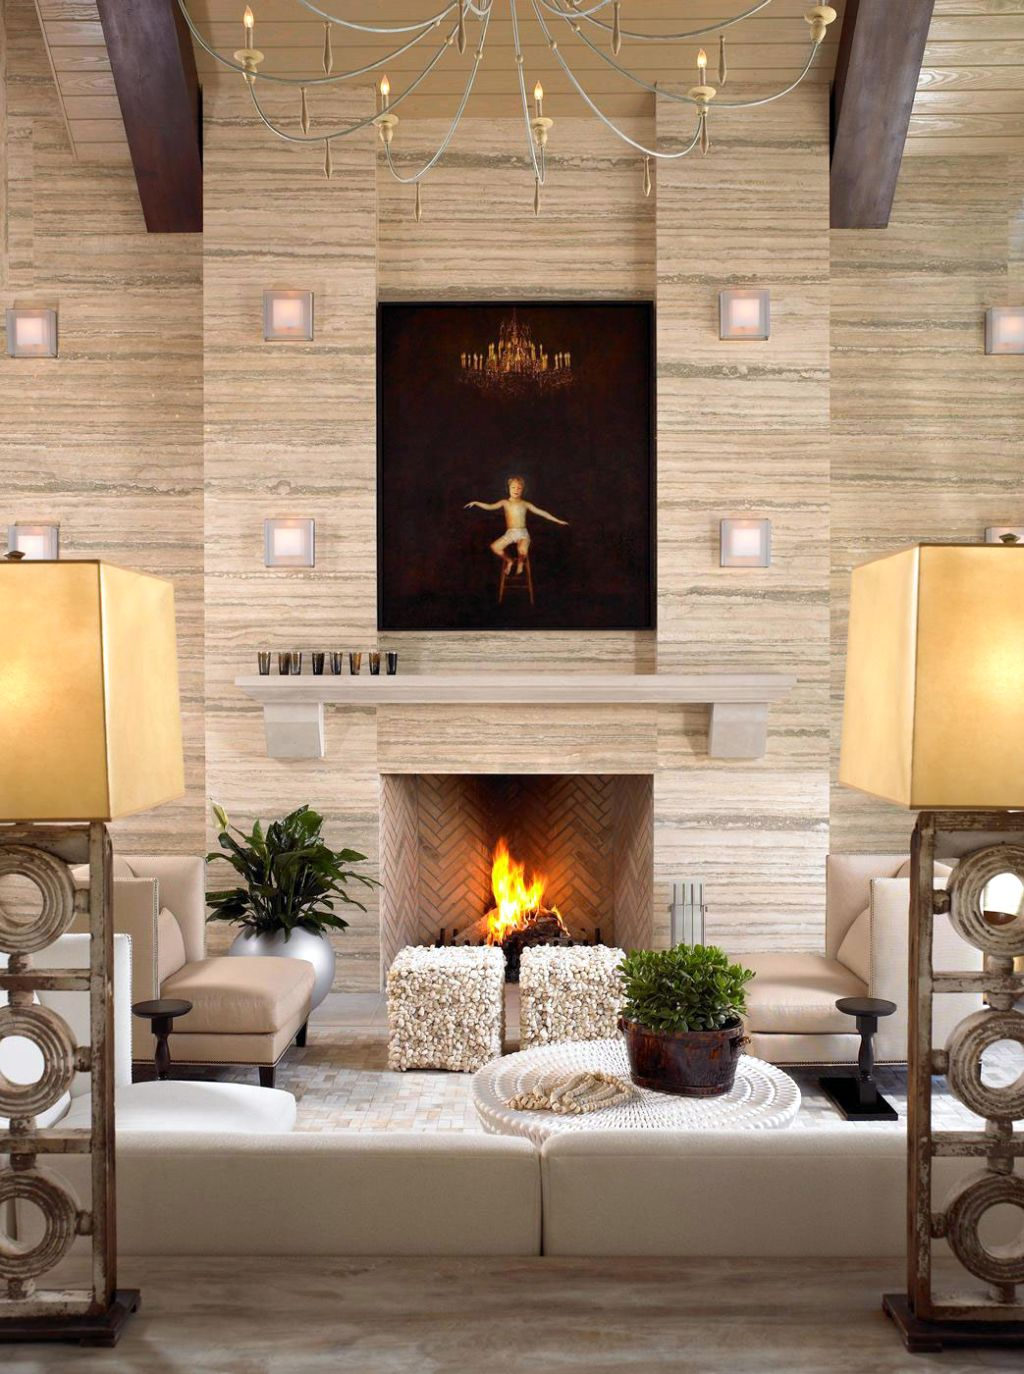 so what do you think about scandinavian fireplace design ideas 12 above its amazing right just so you know that photo is only one of 18 trending - Fireplace Design Ideas